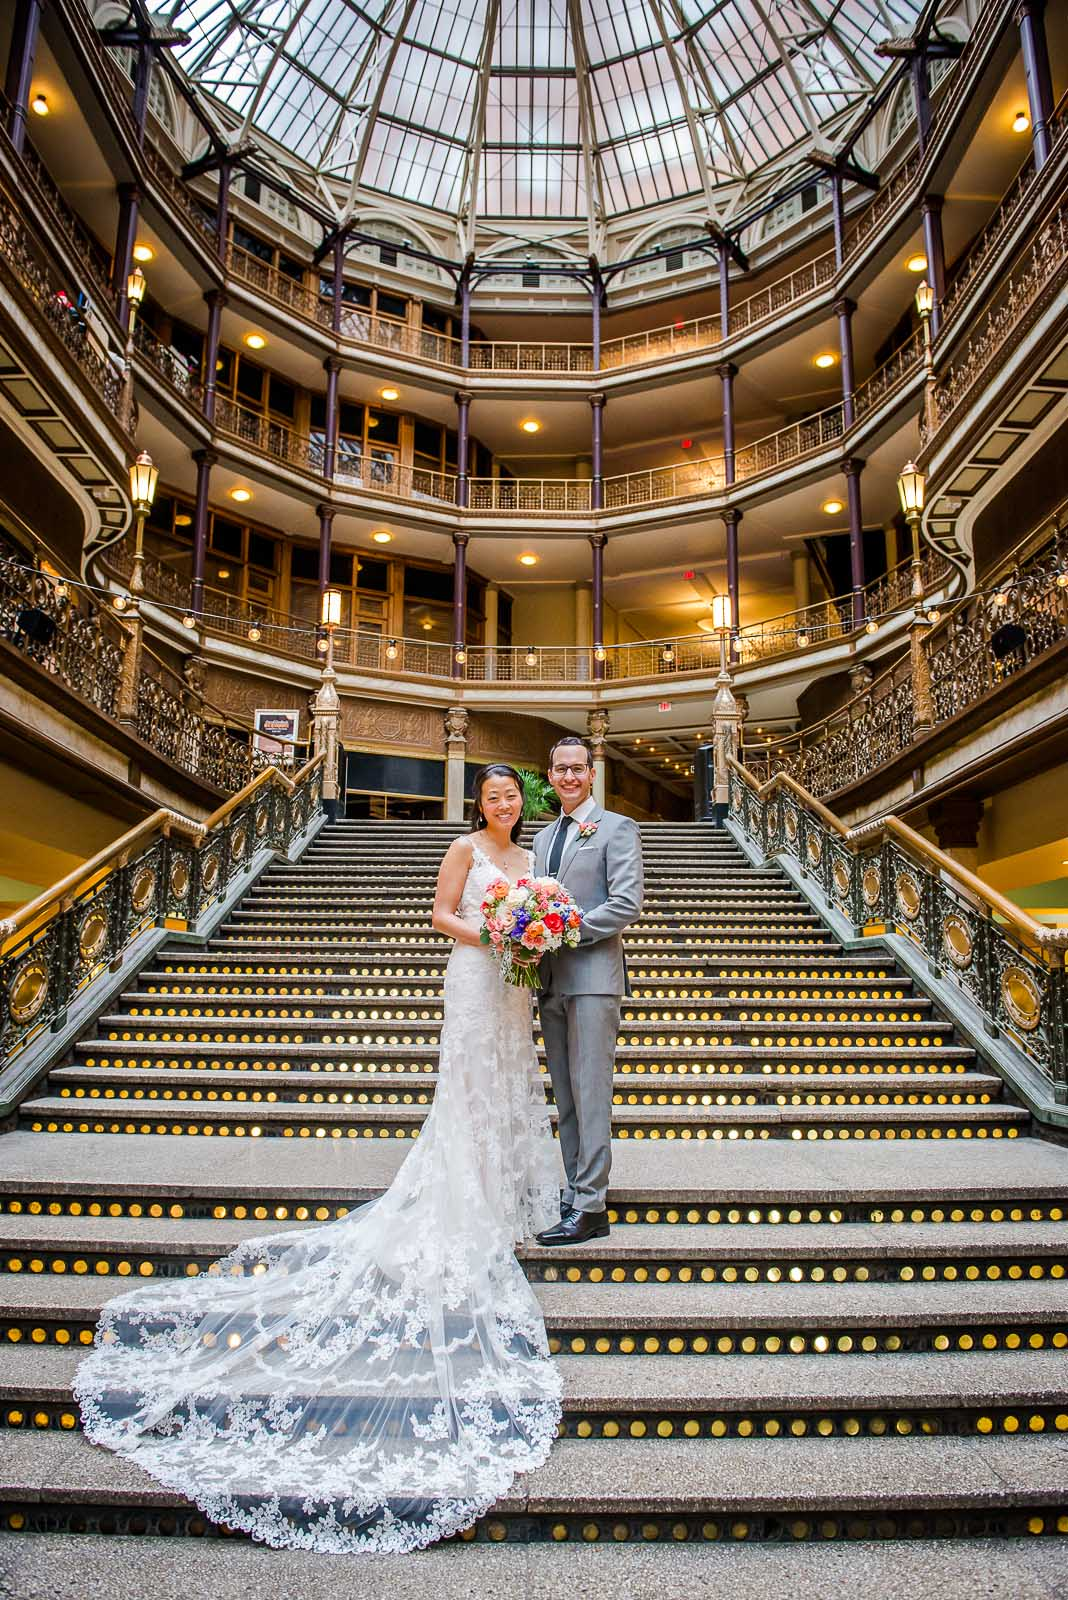 Eric_and_Christy_Photography_Blog_Wedding_Anne_Michael-34